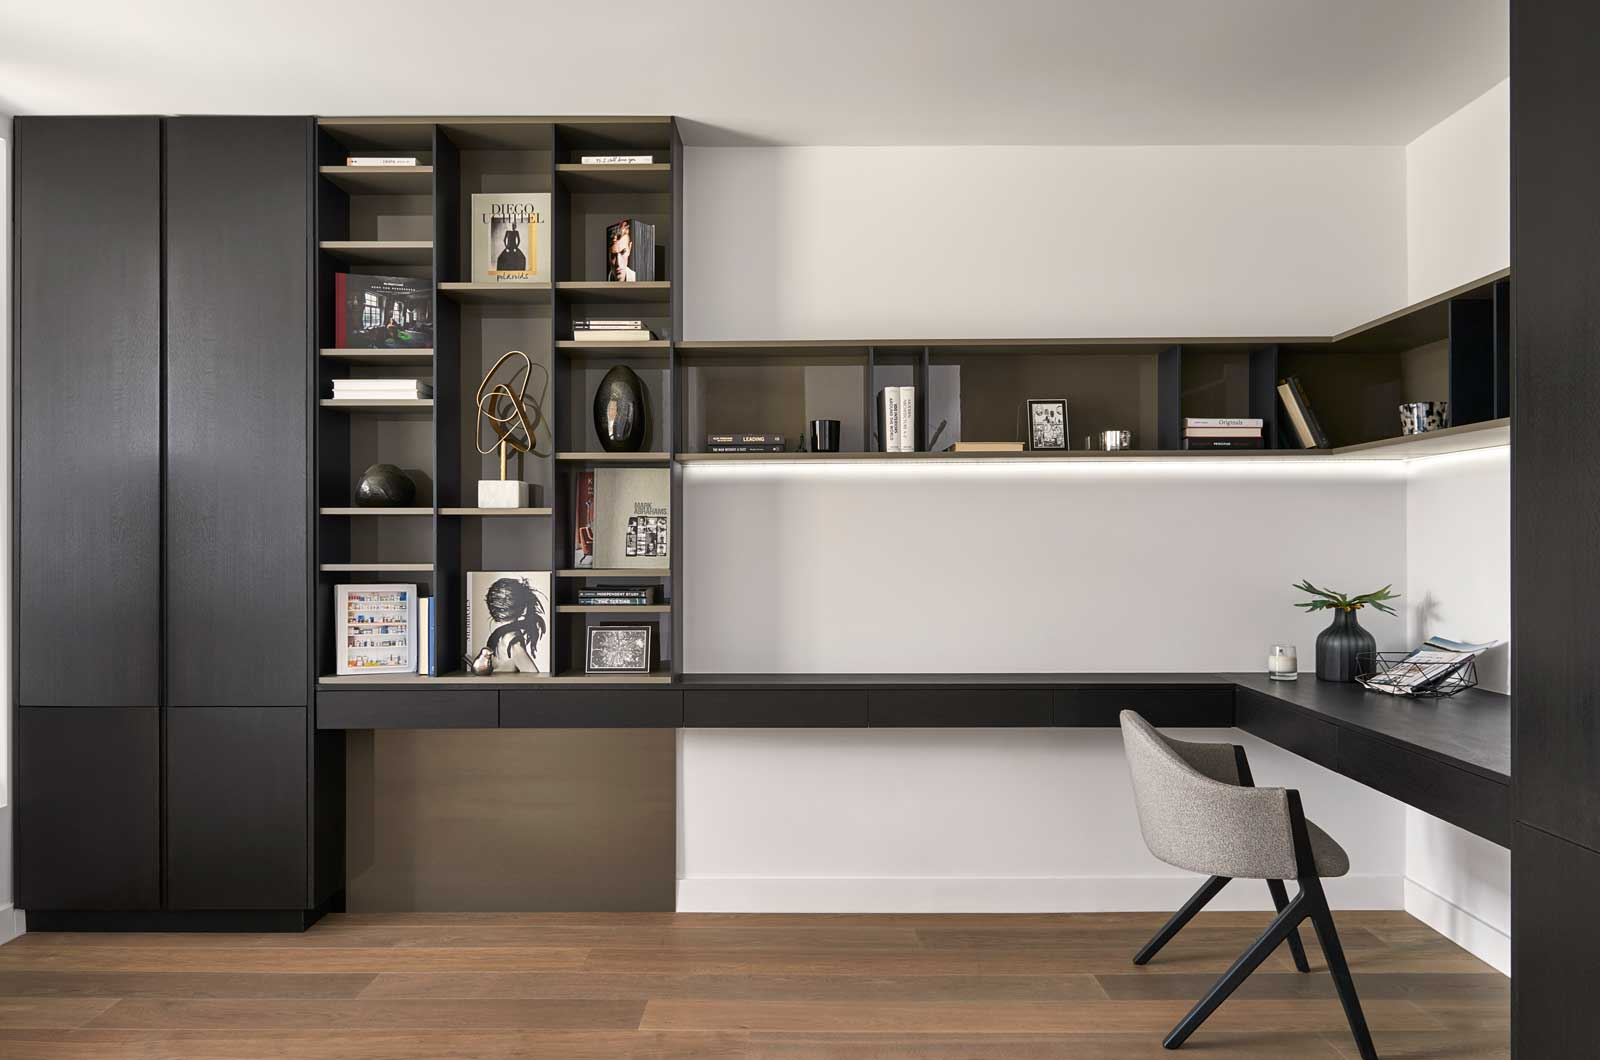 How custom millwork makes this space work